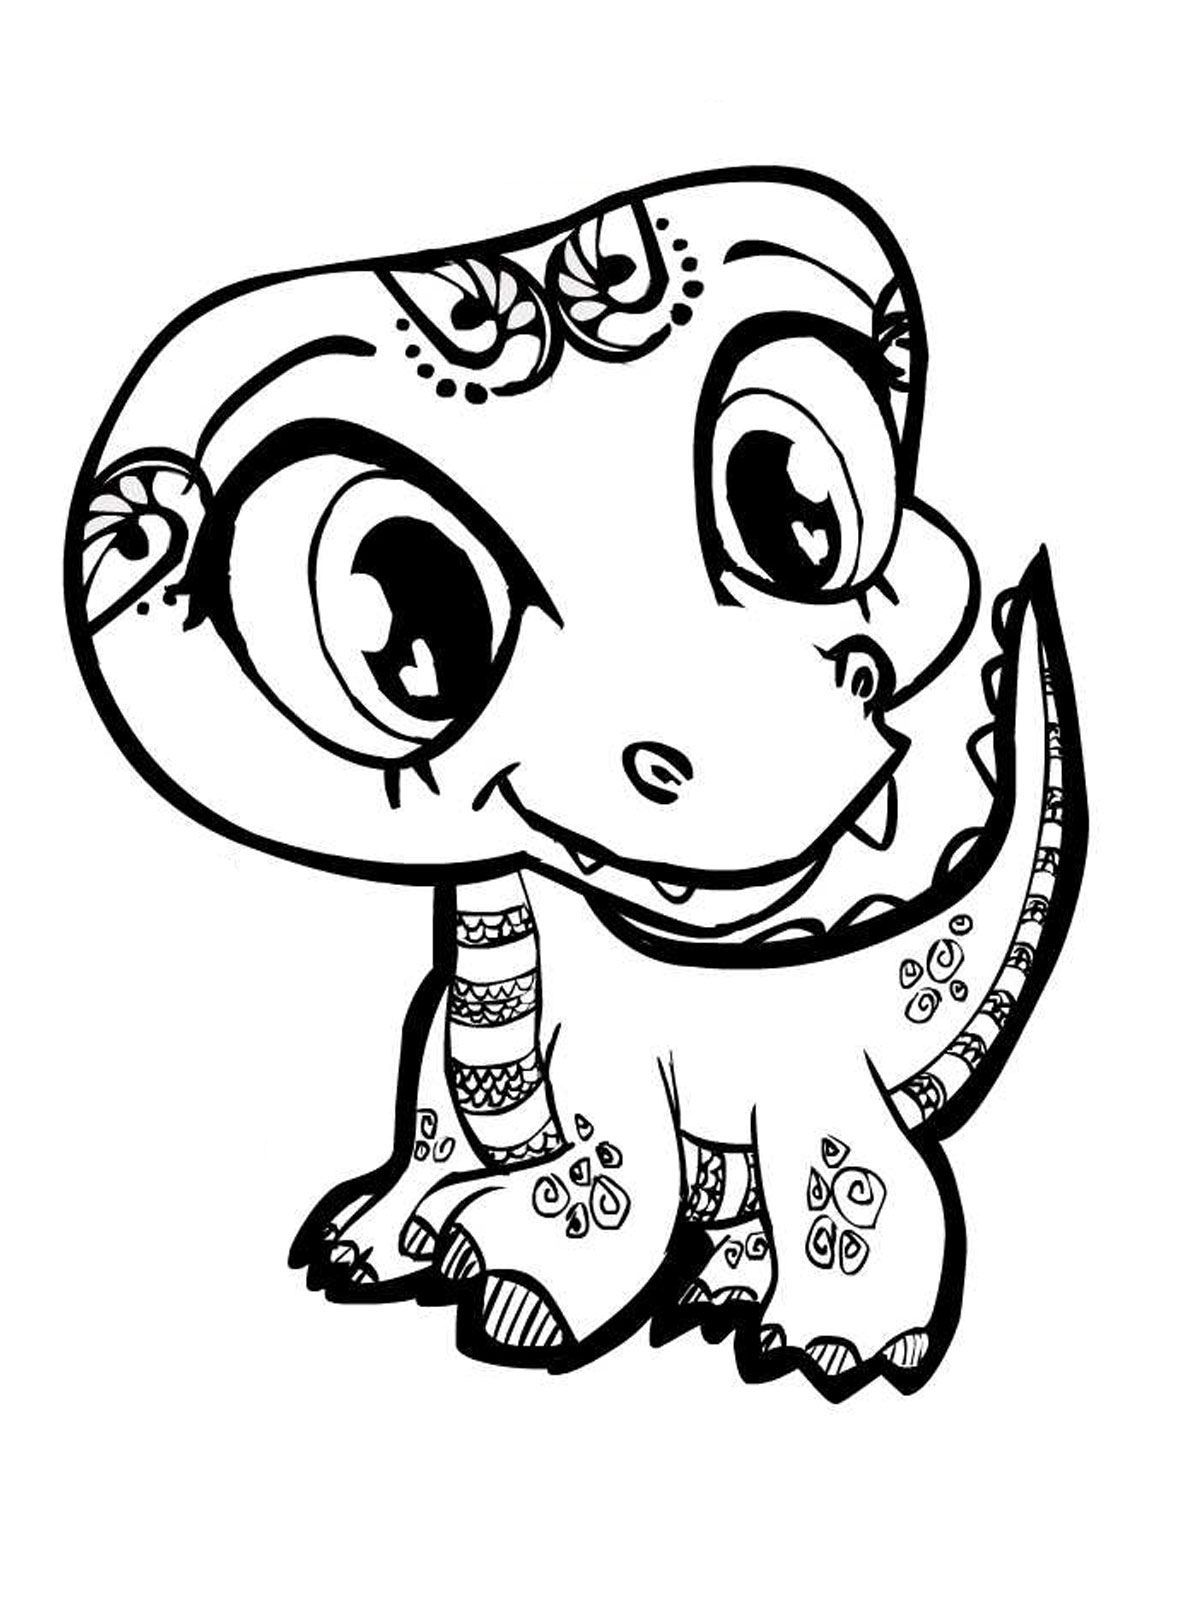 Coloring Pages Baby Cartoon Animals Coloring Home - printable baby dinosaur coloring pages